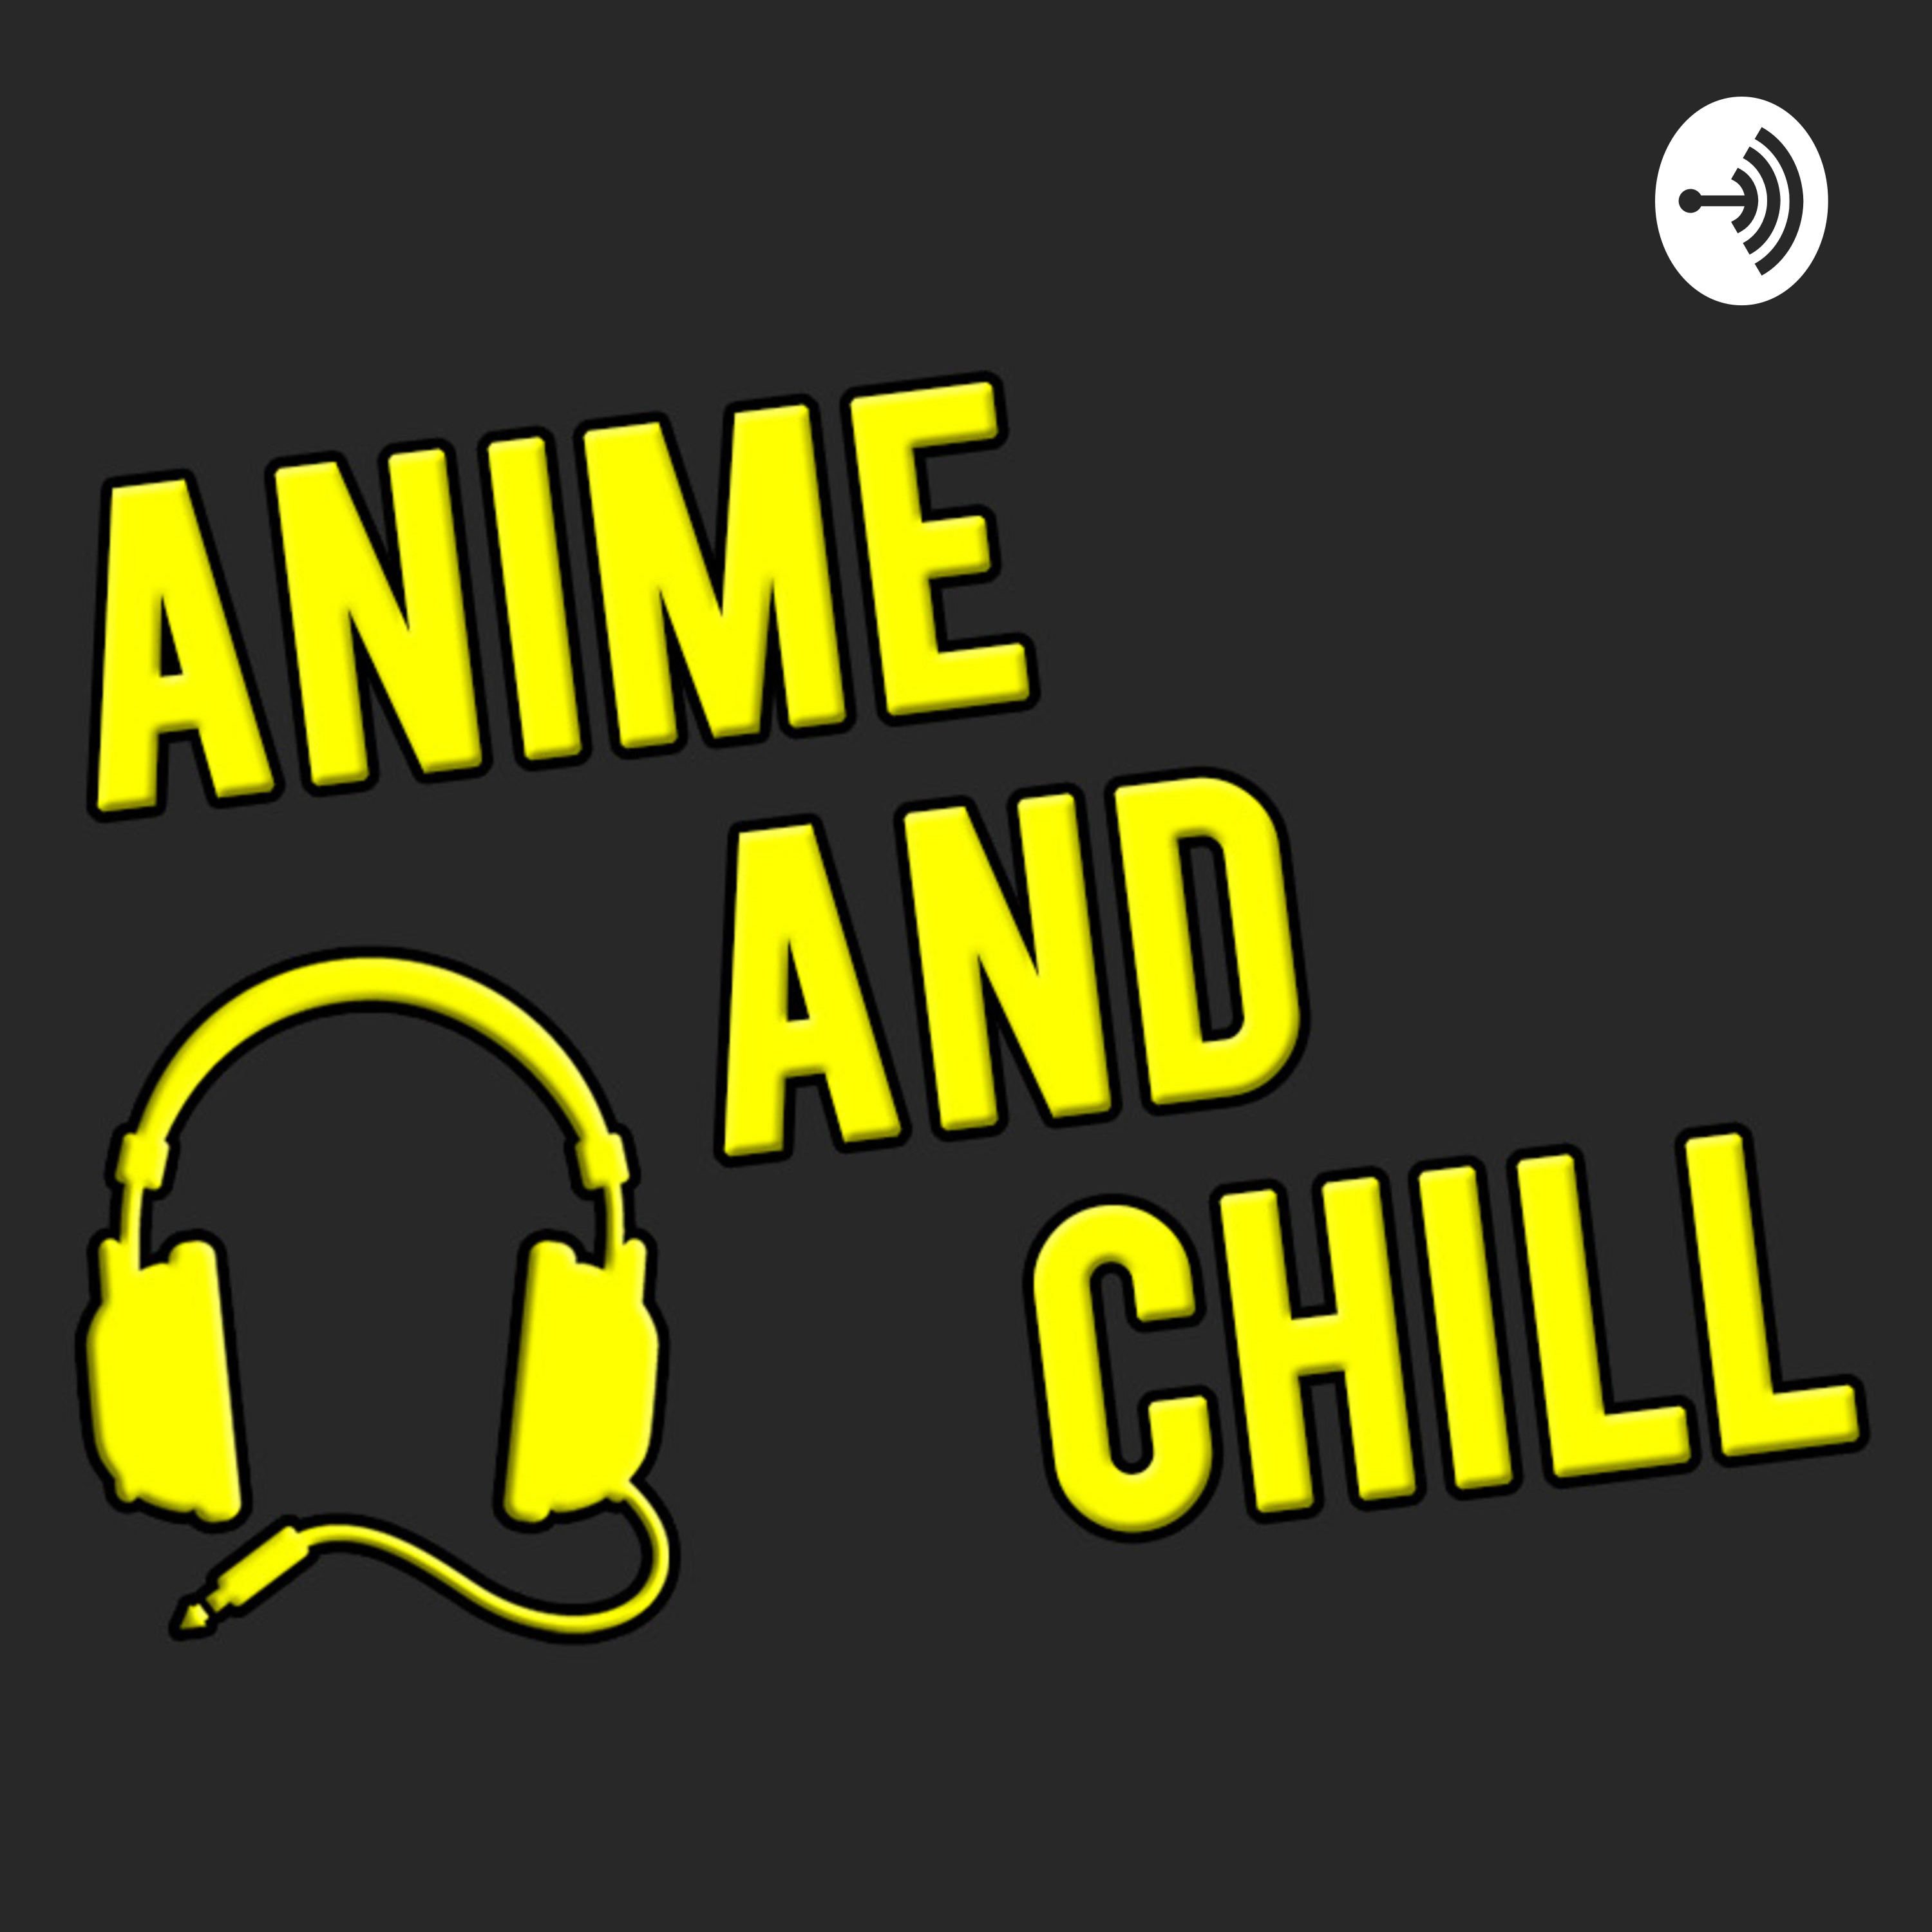 Anime and Chill.